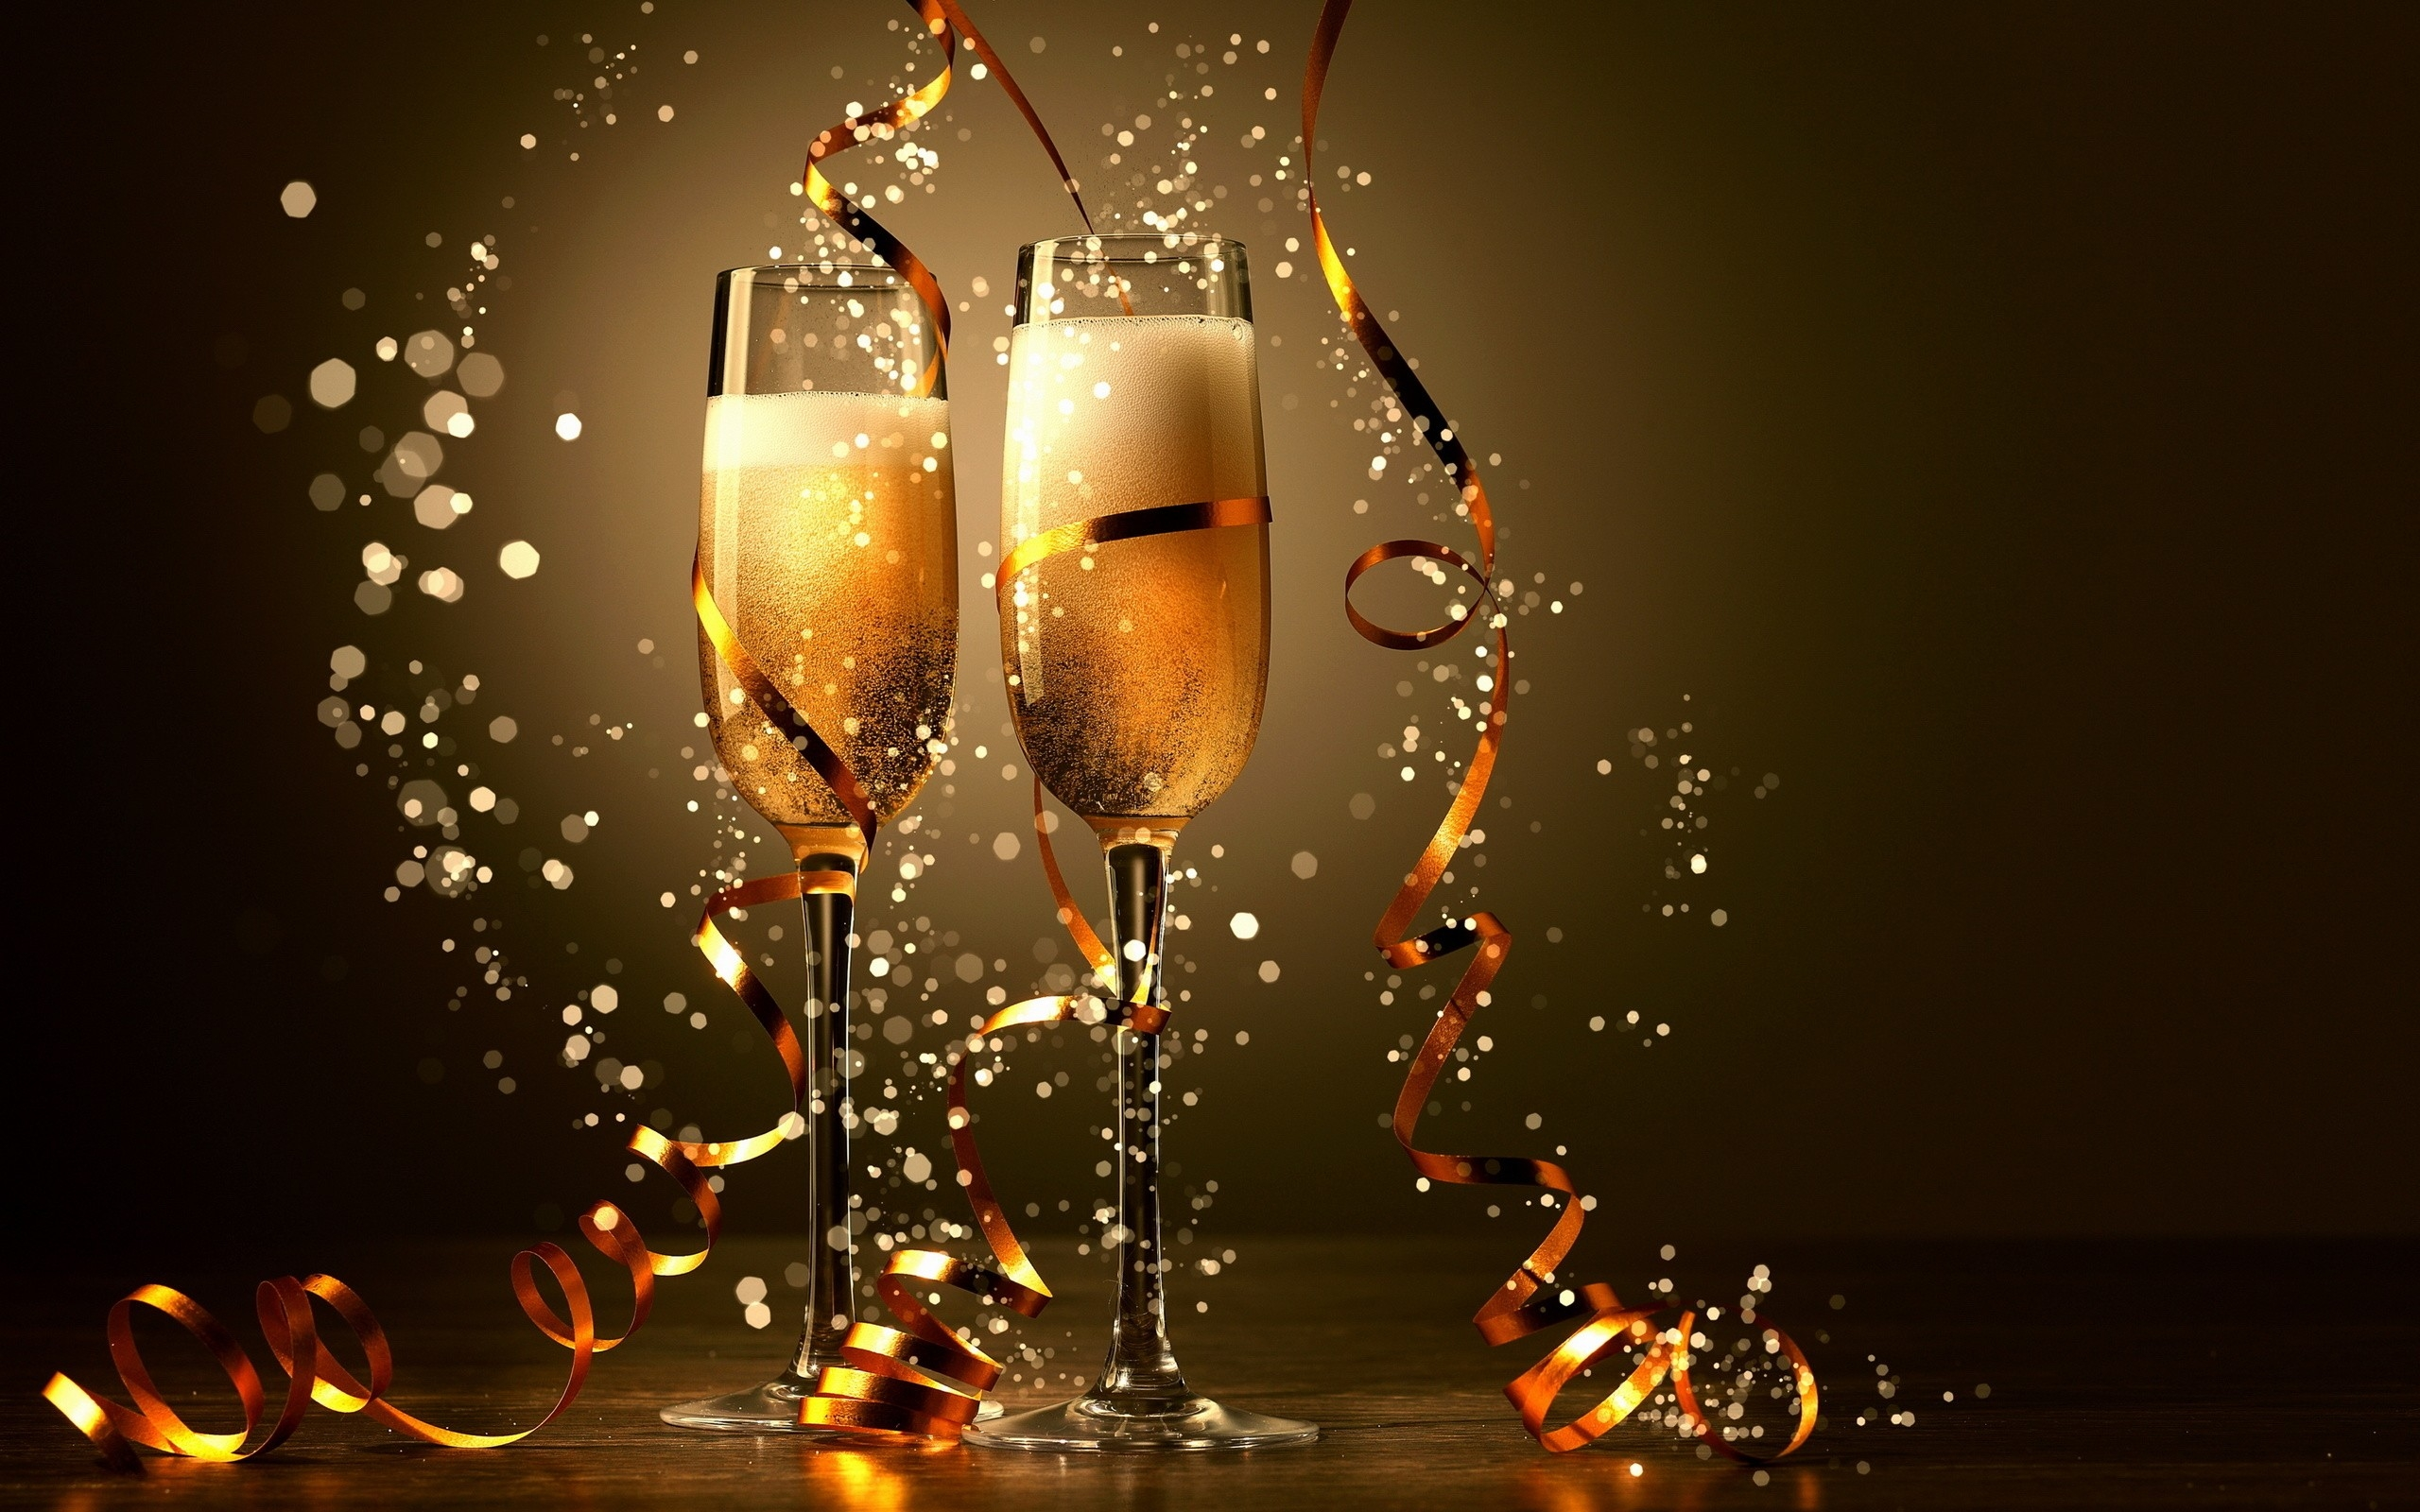 hd wallpapers new years wallpaper year champagne 2560x1600